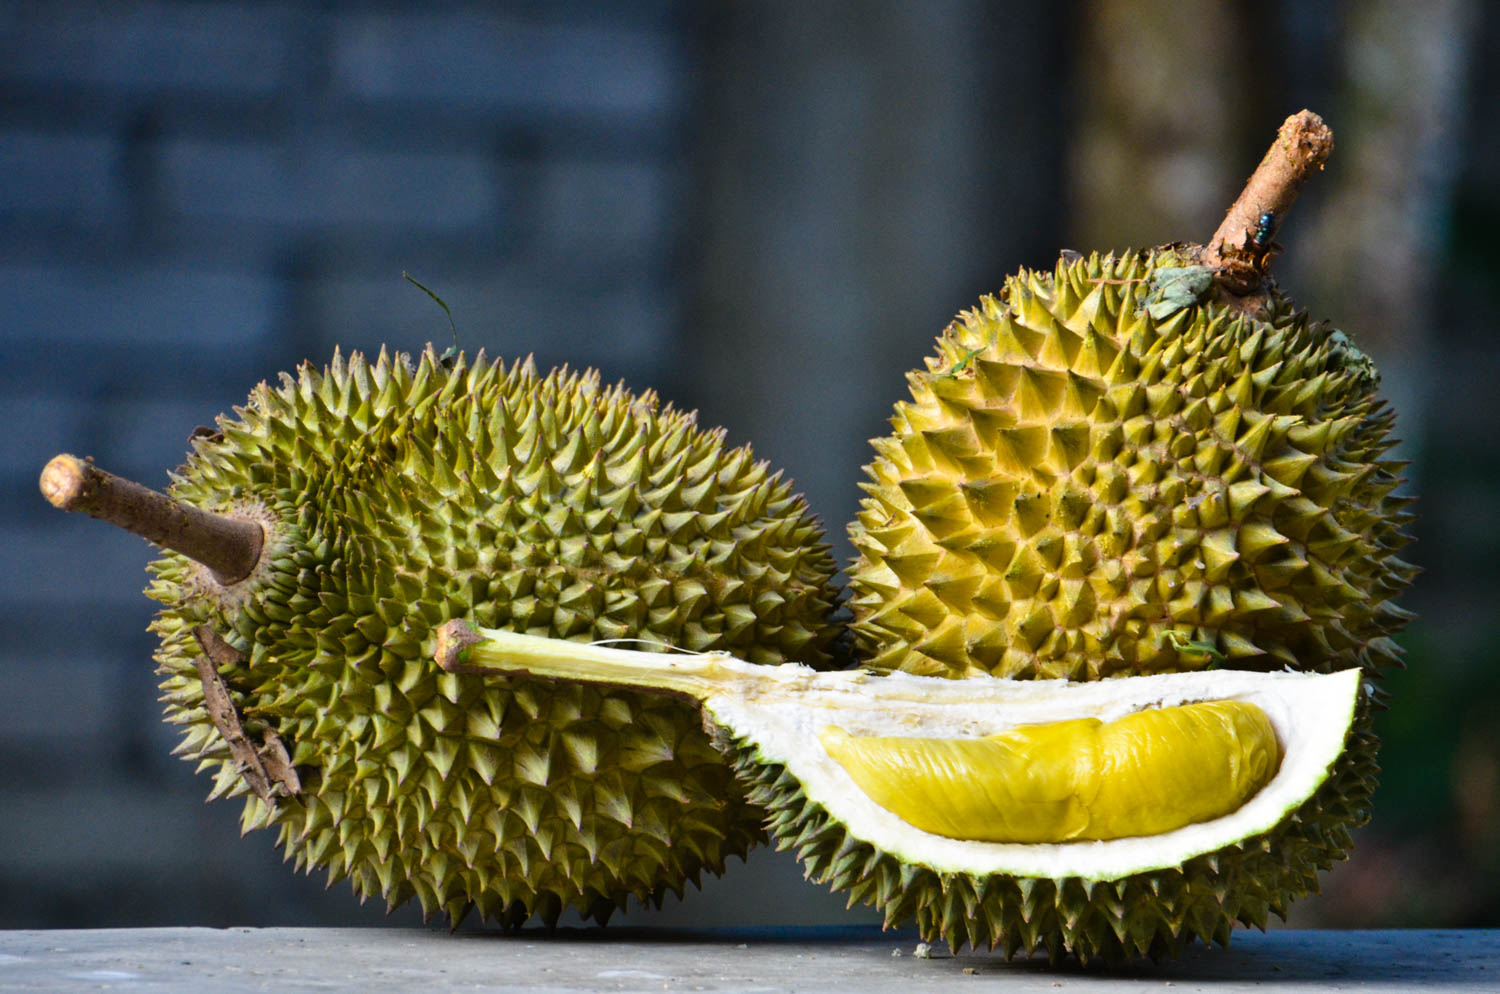 Durian is one the stinkiest exotic fruits and is original from Malaysia, Thailand and Indonesia